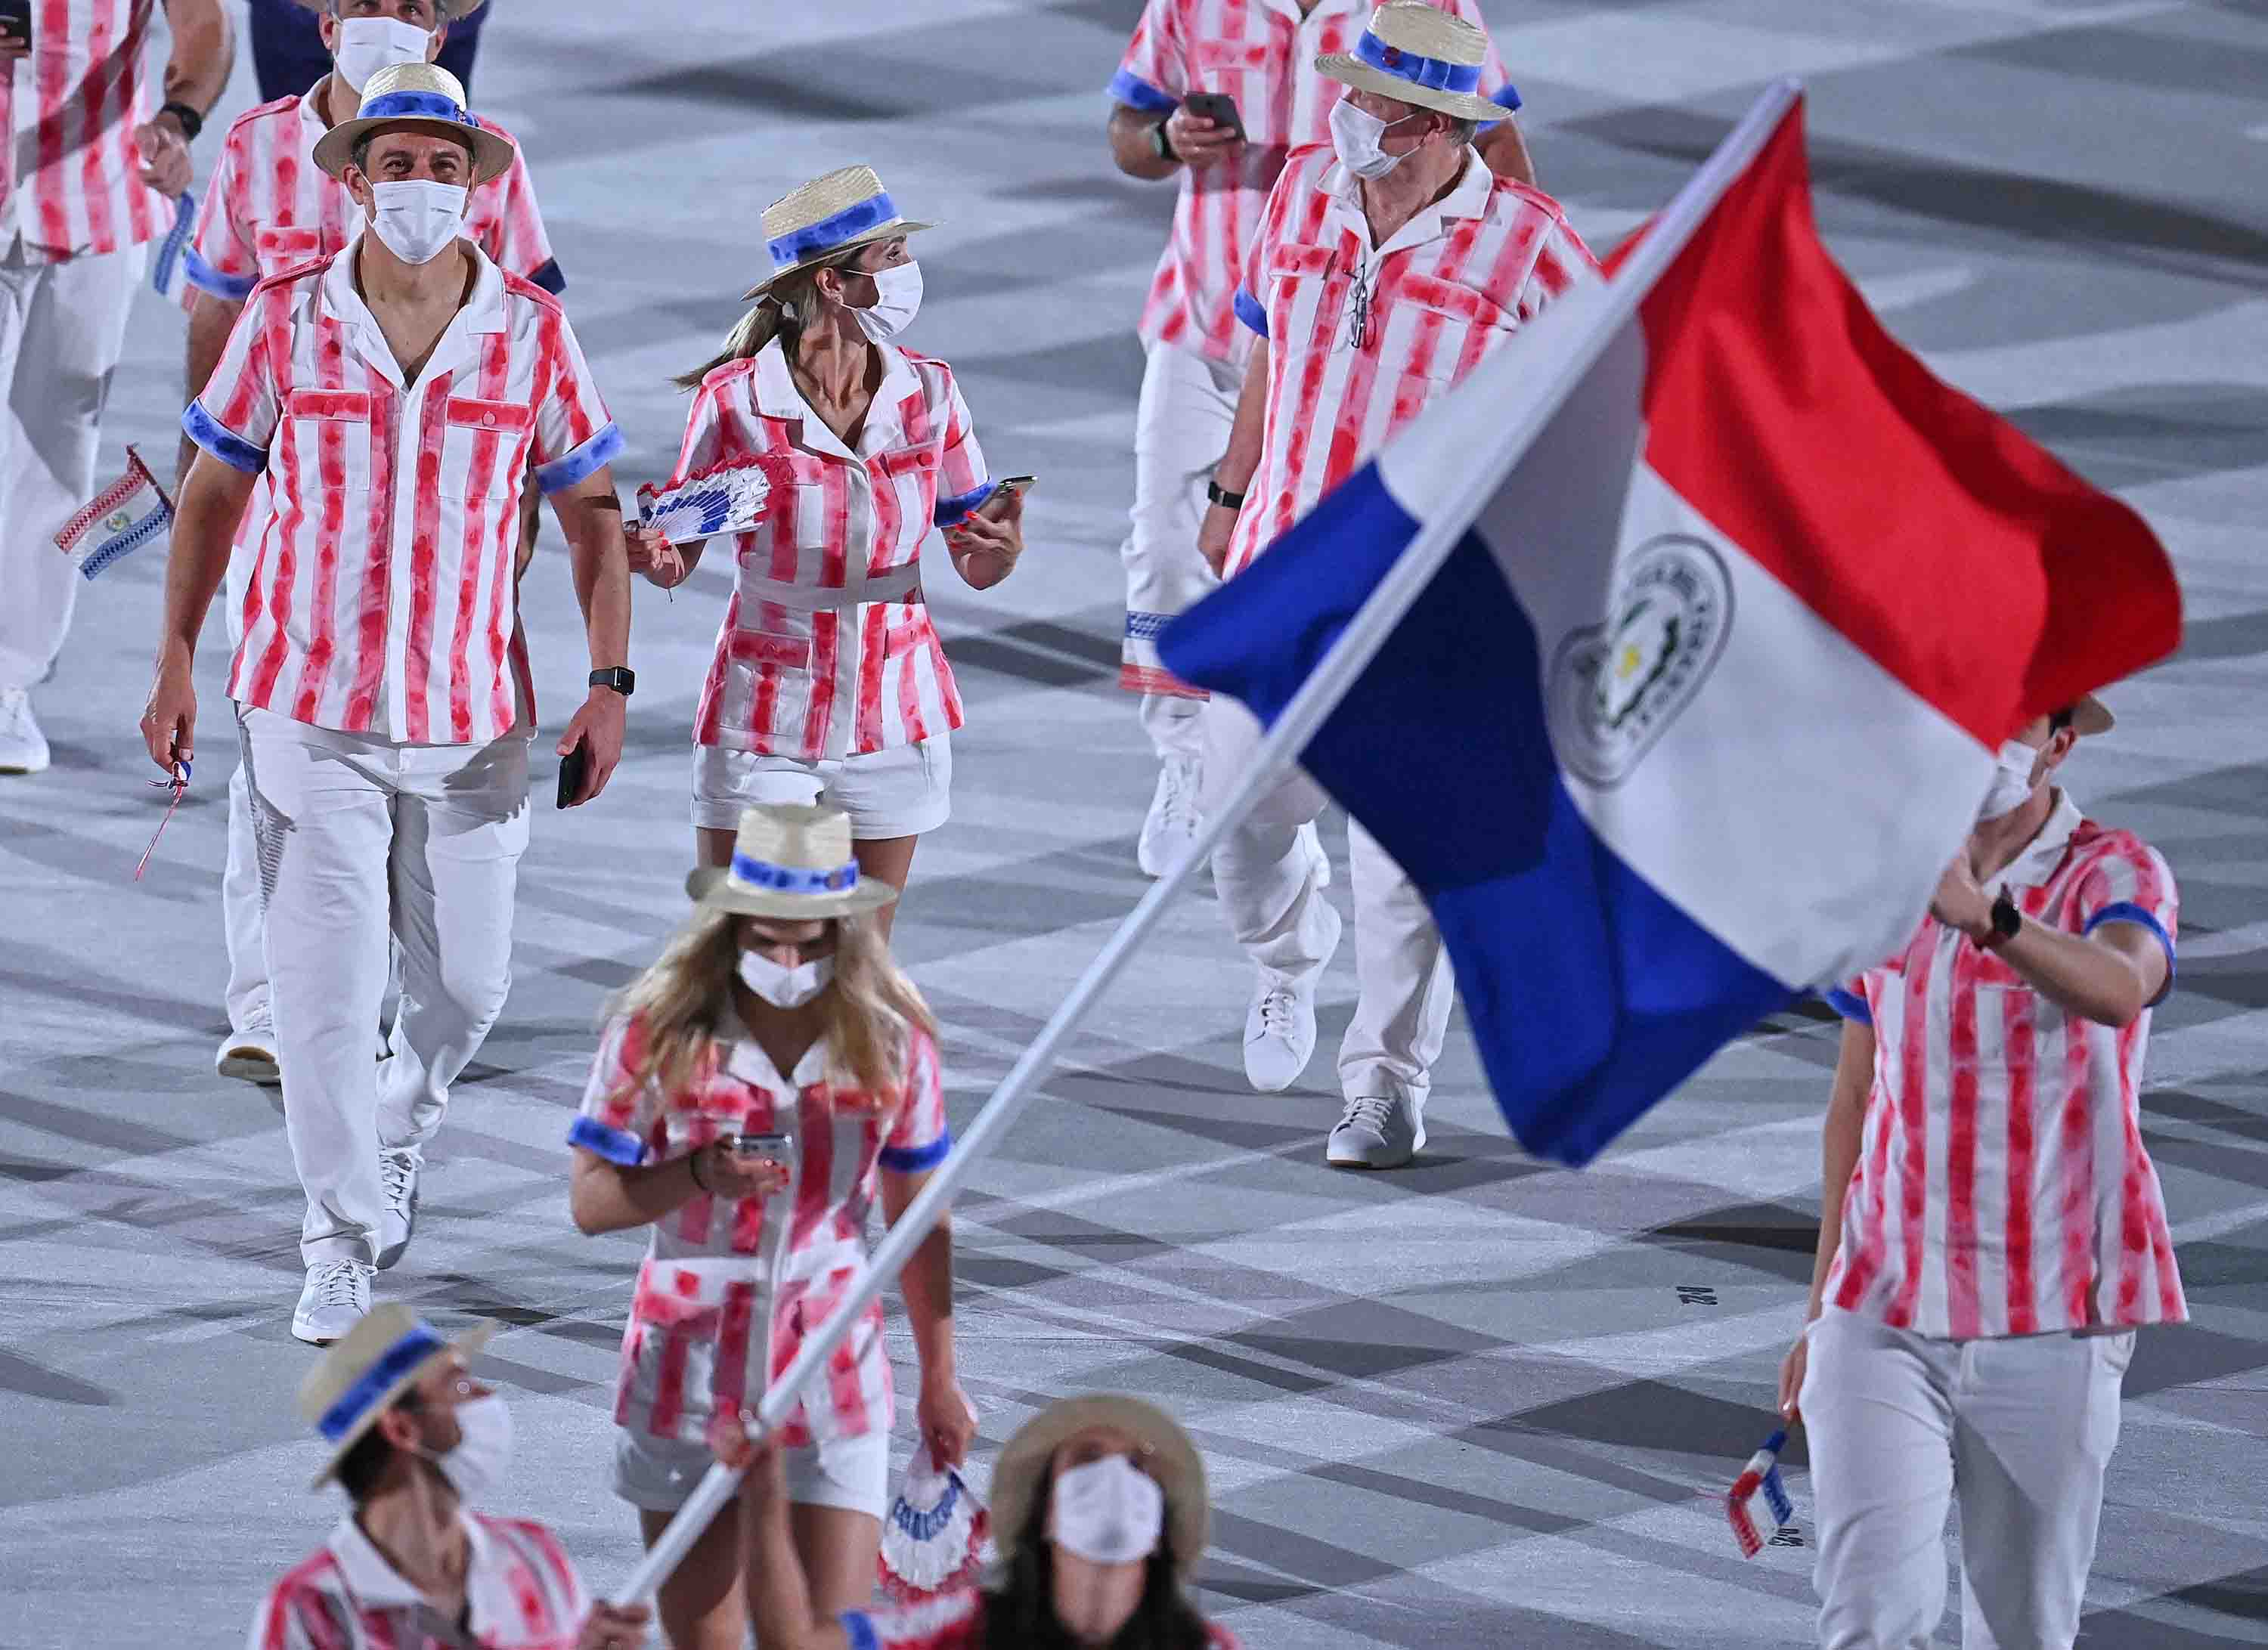 Paraguay's delegation parade during the Opening Ceremony.